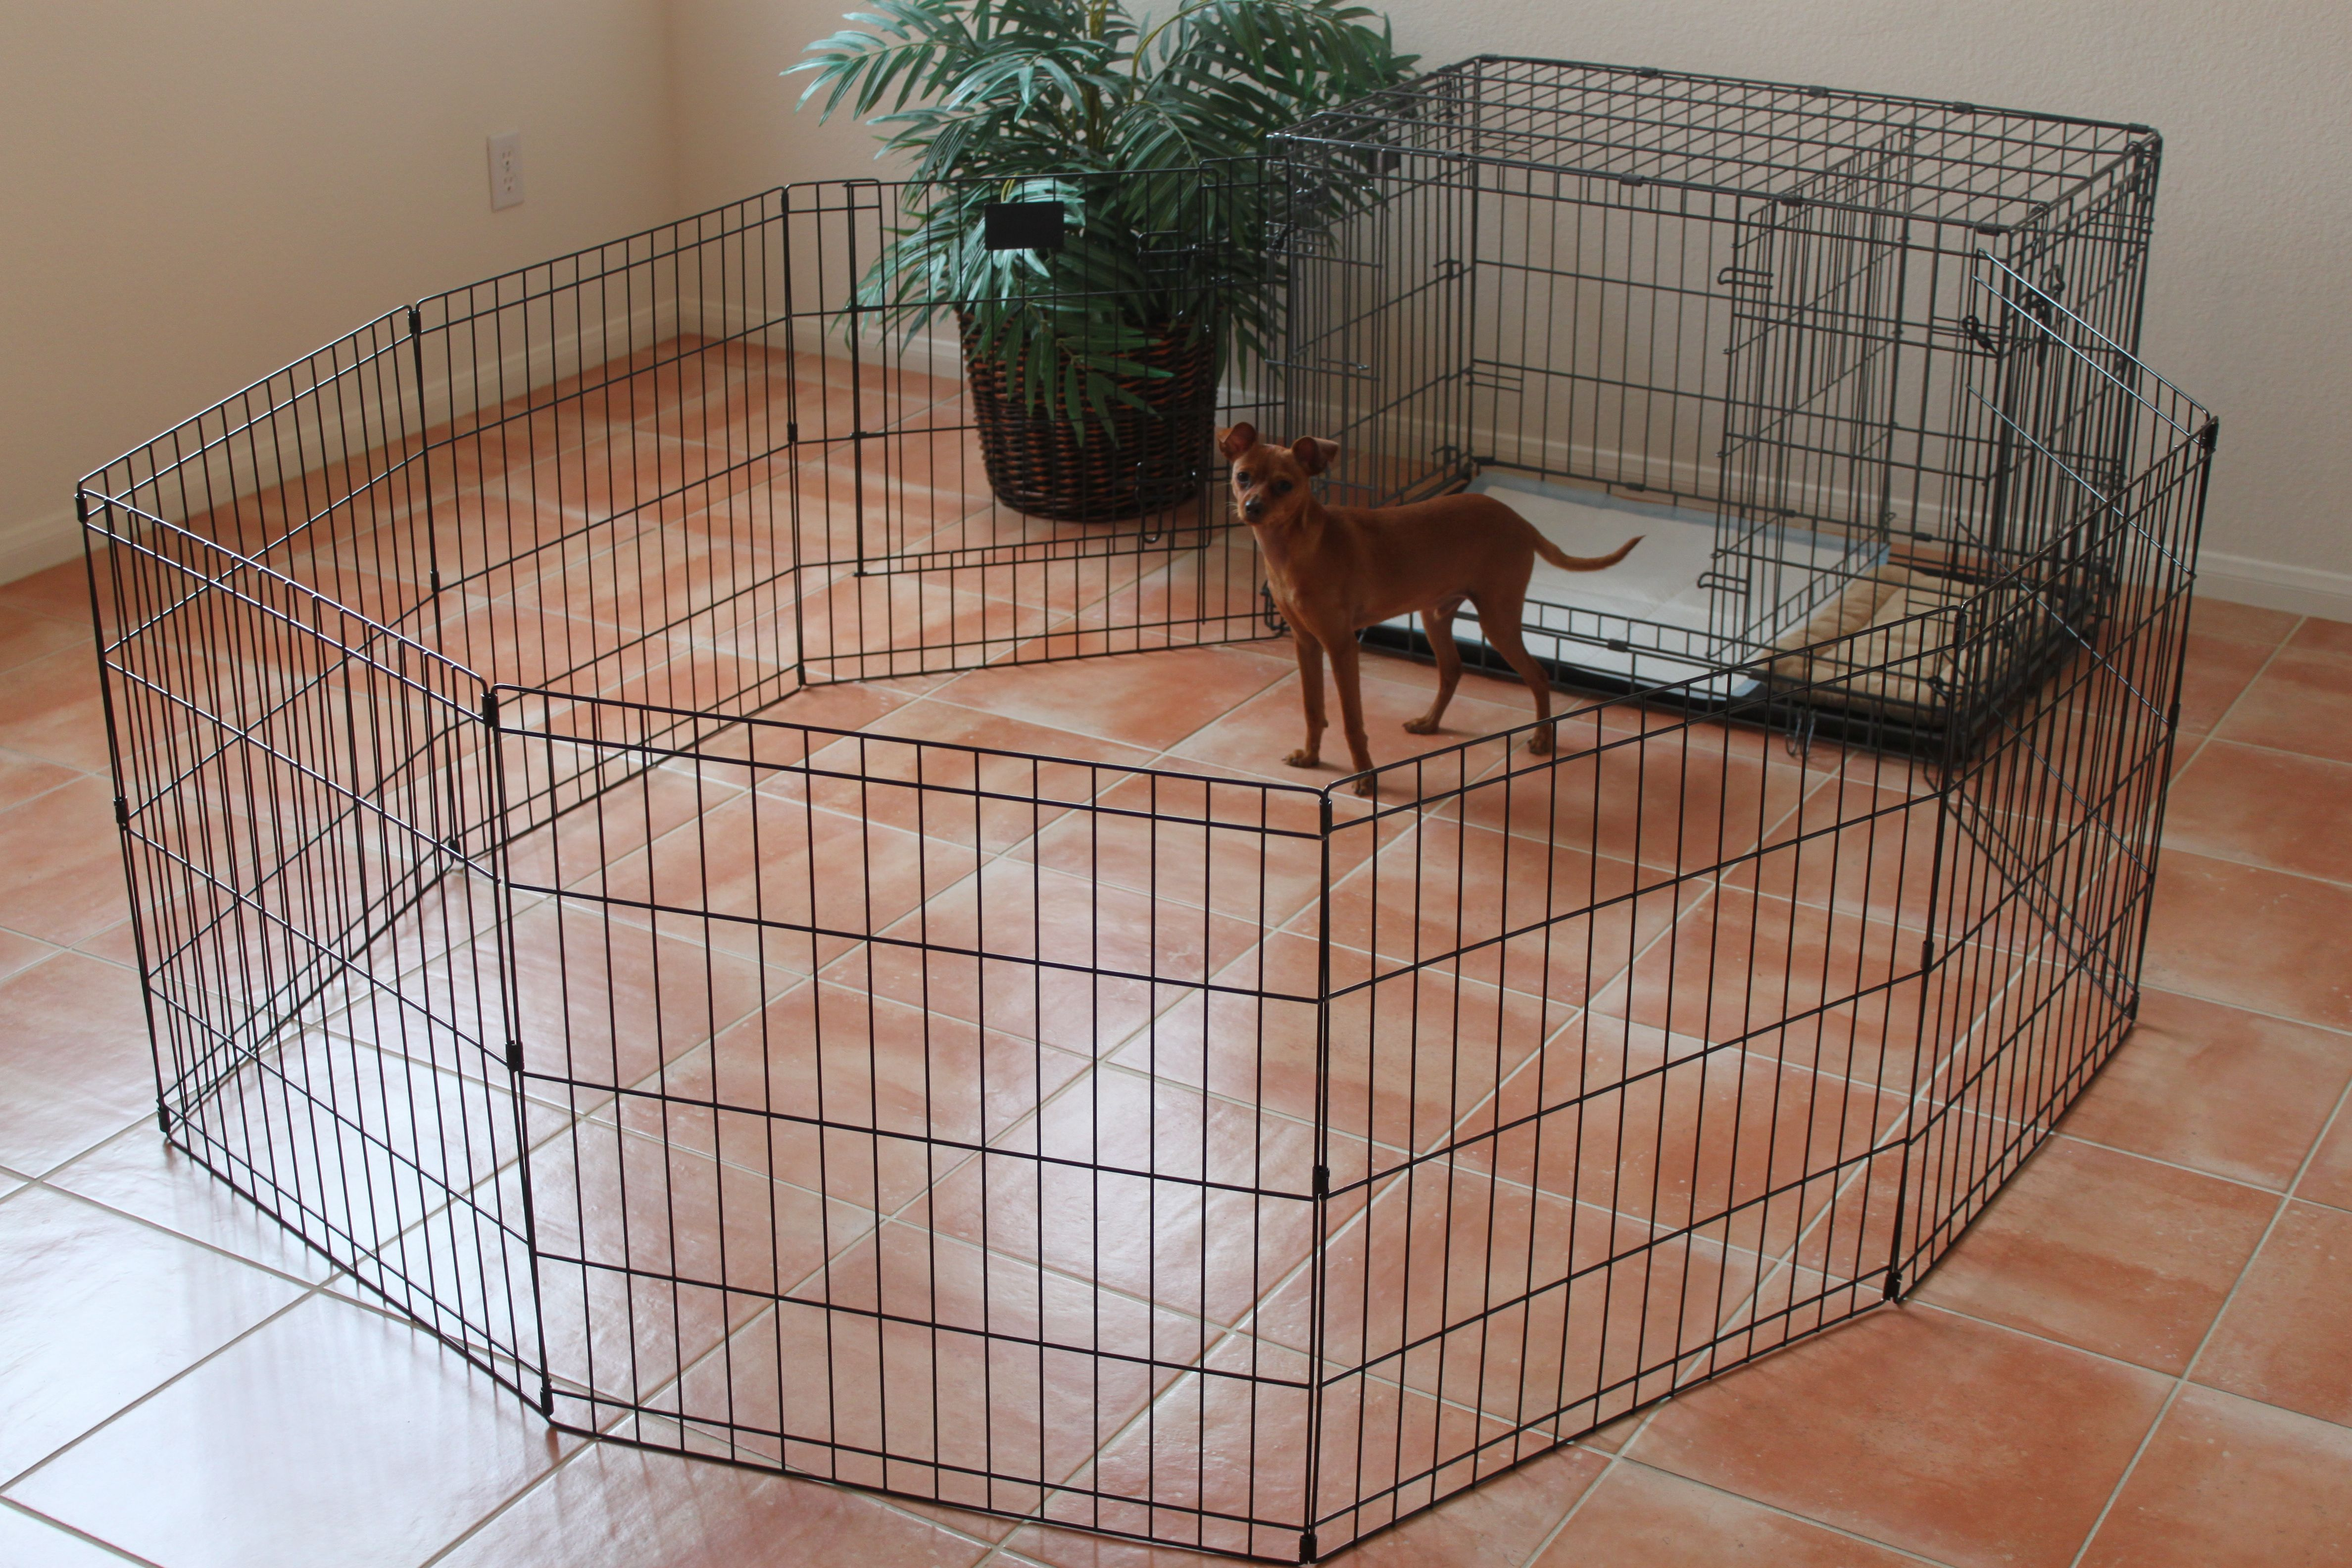 The Ptpa Playpen Is Great For When Your Puppy Has Already Been